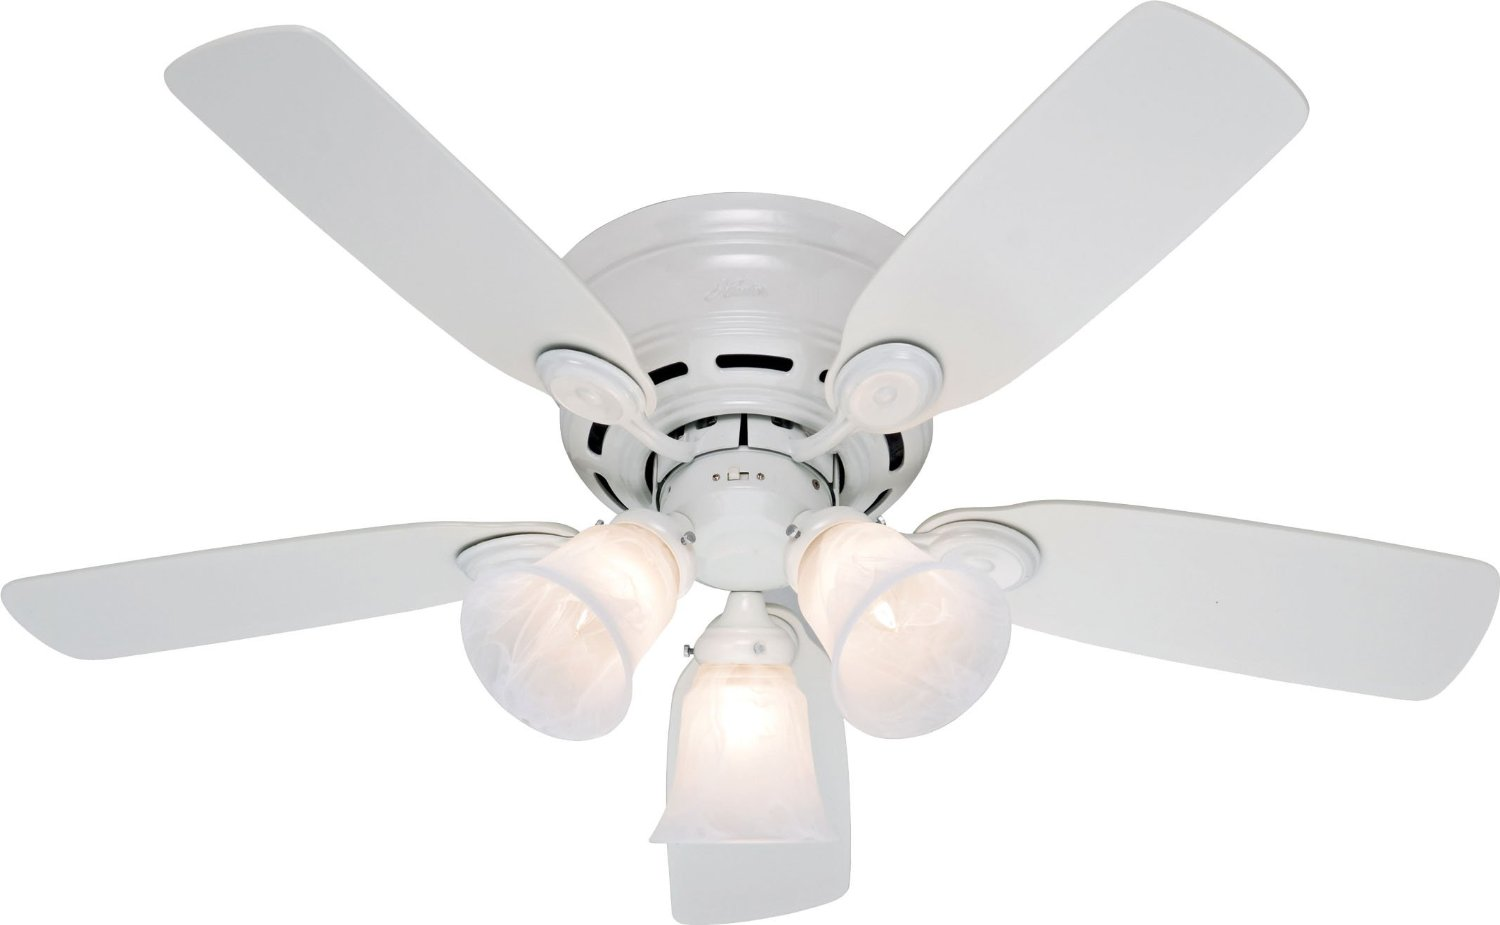 Get Ations Hunter 21880 Low Profile 42 Inch 5 Blade 3 Light Ceiling Fan